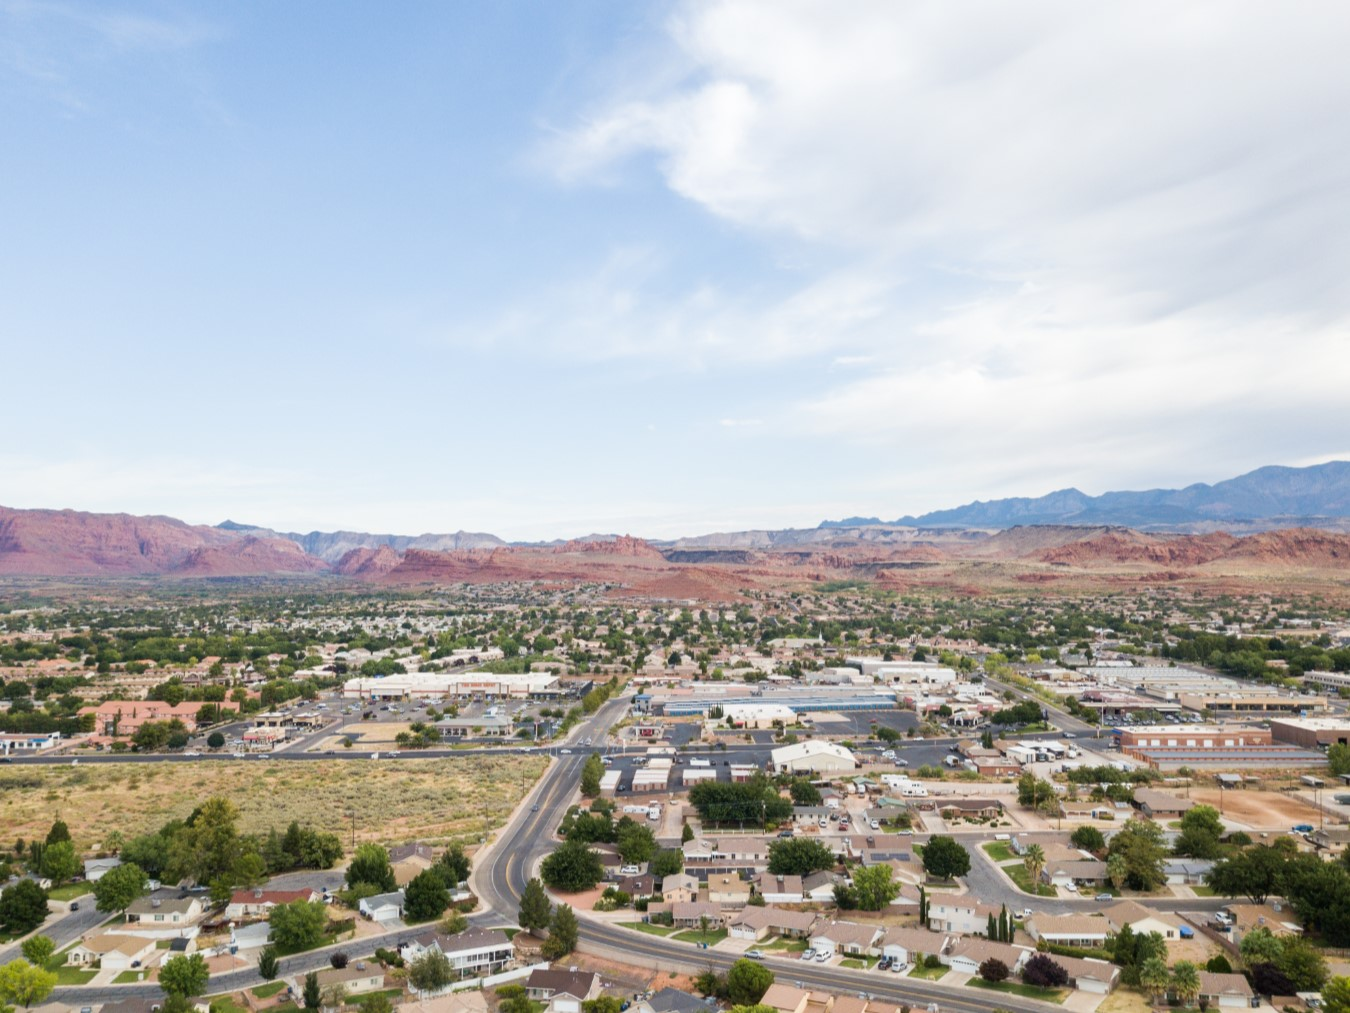 Saint George community image